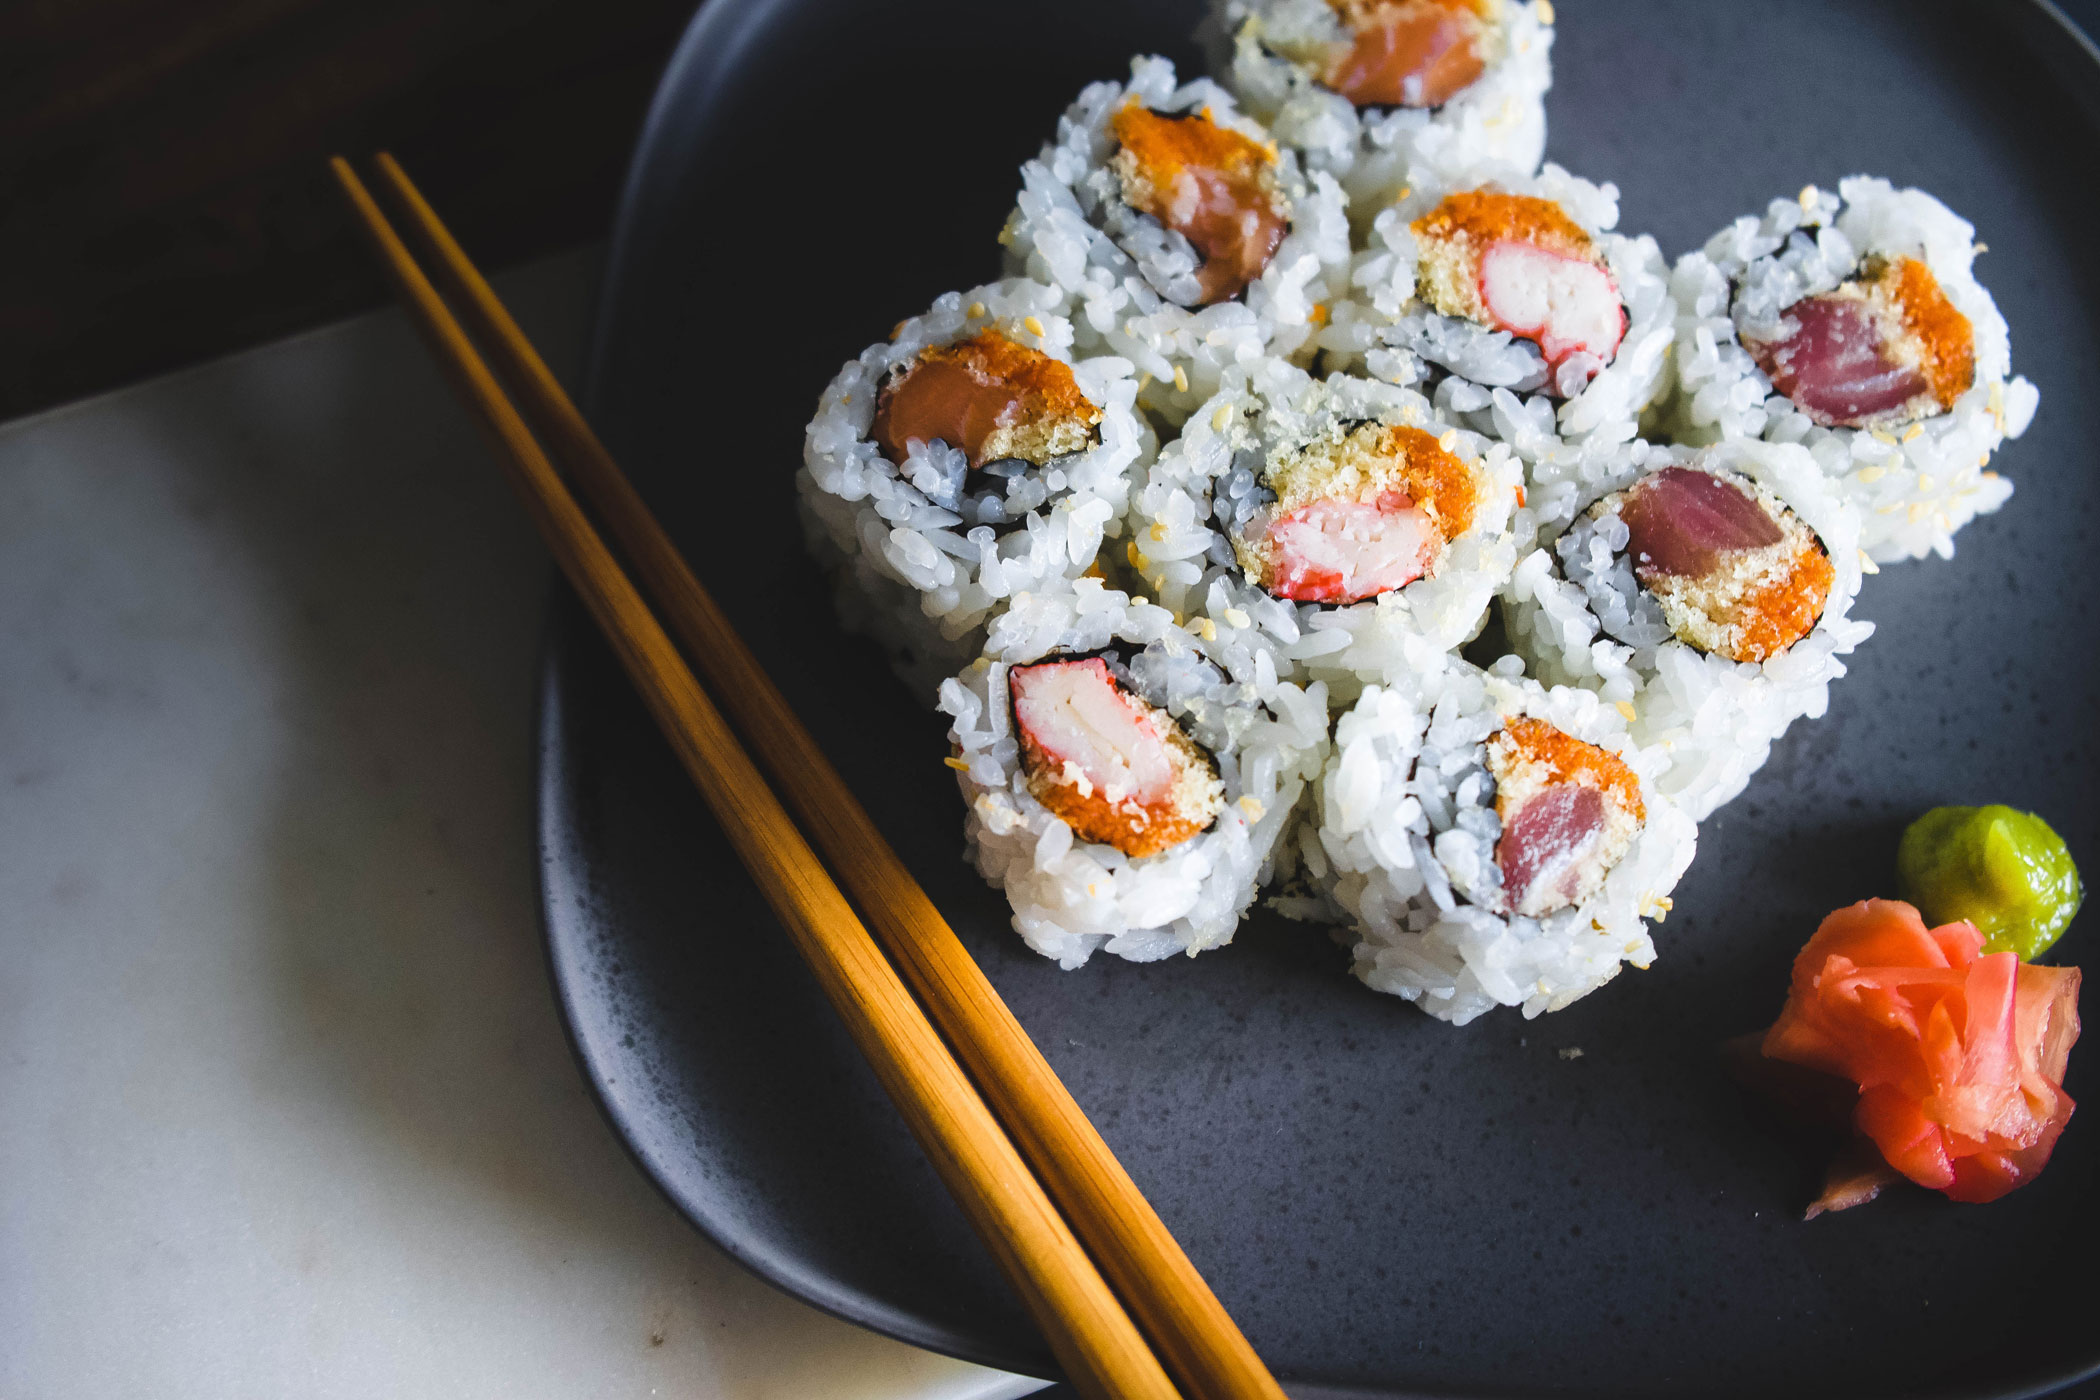 who invented the sushi roll?